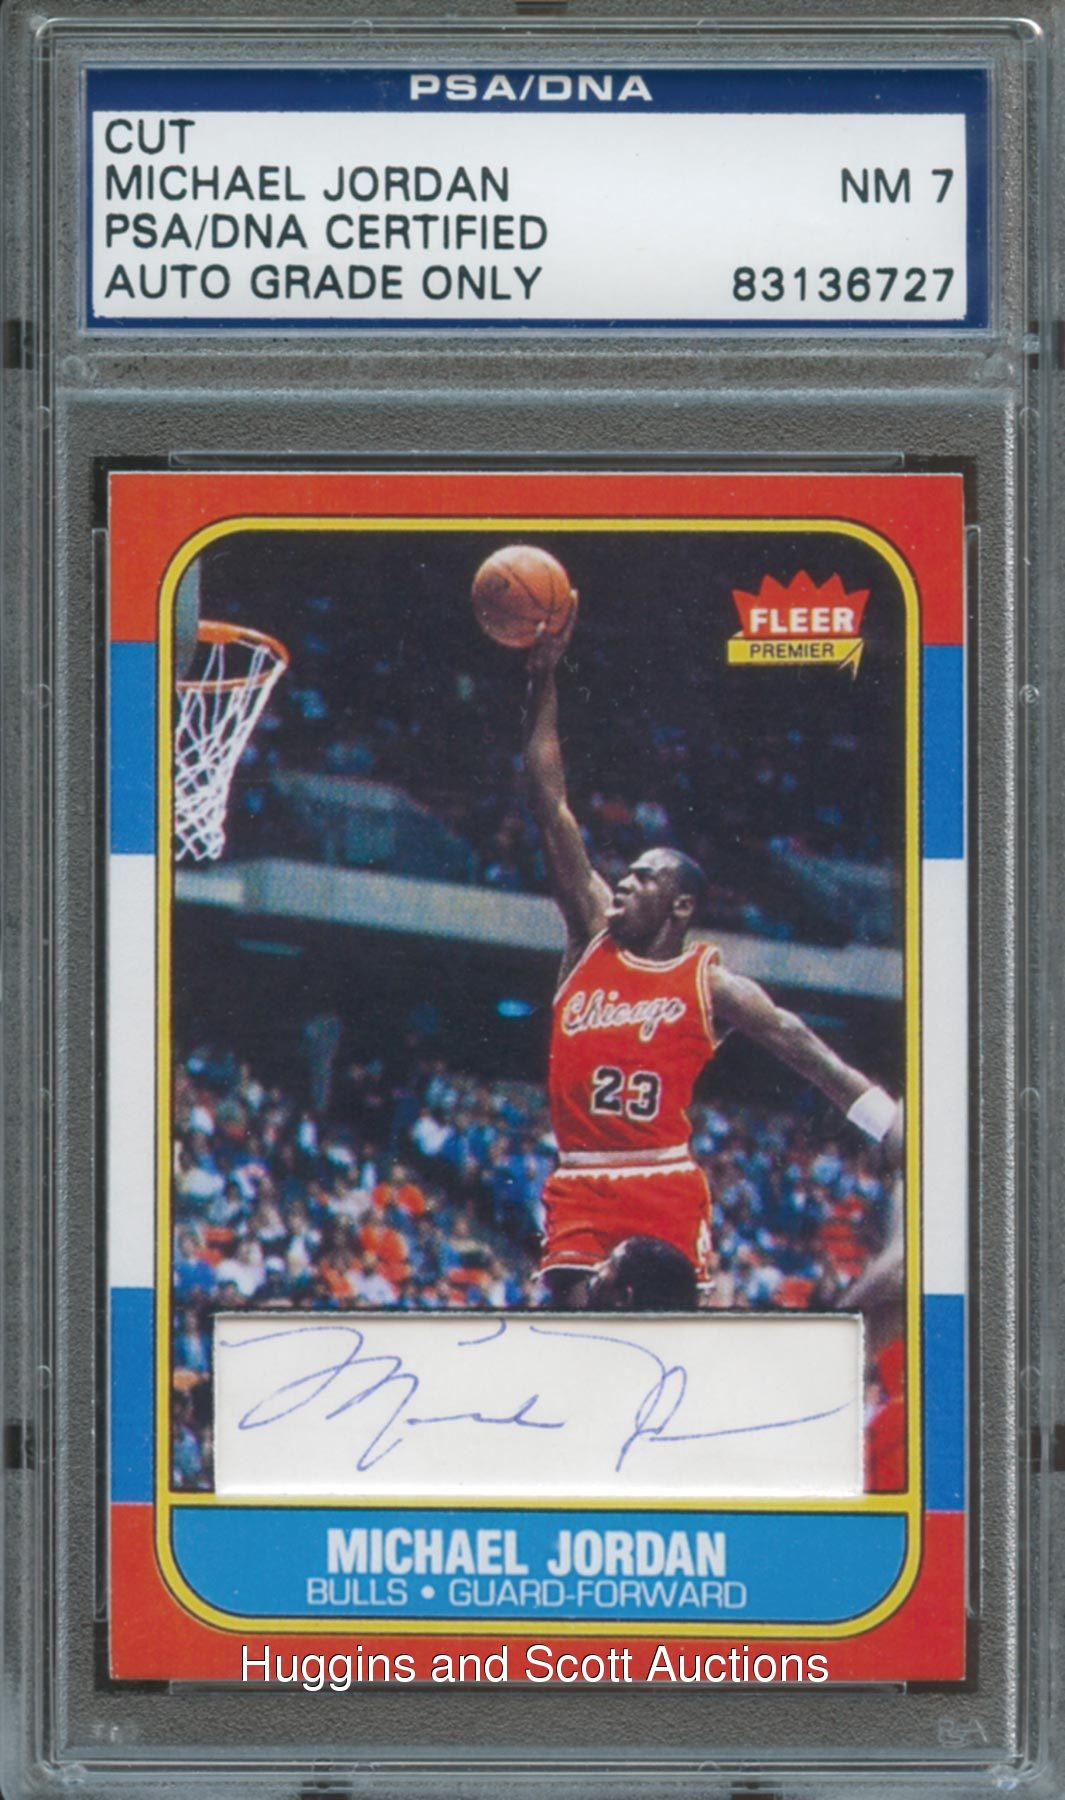 fa0b3371e0e Michael Jordan Cut Signature Rookie Reprint Card PSA/DNA 7